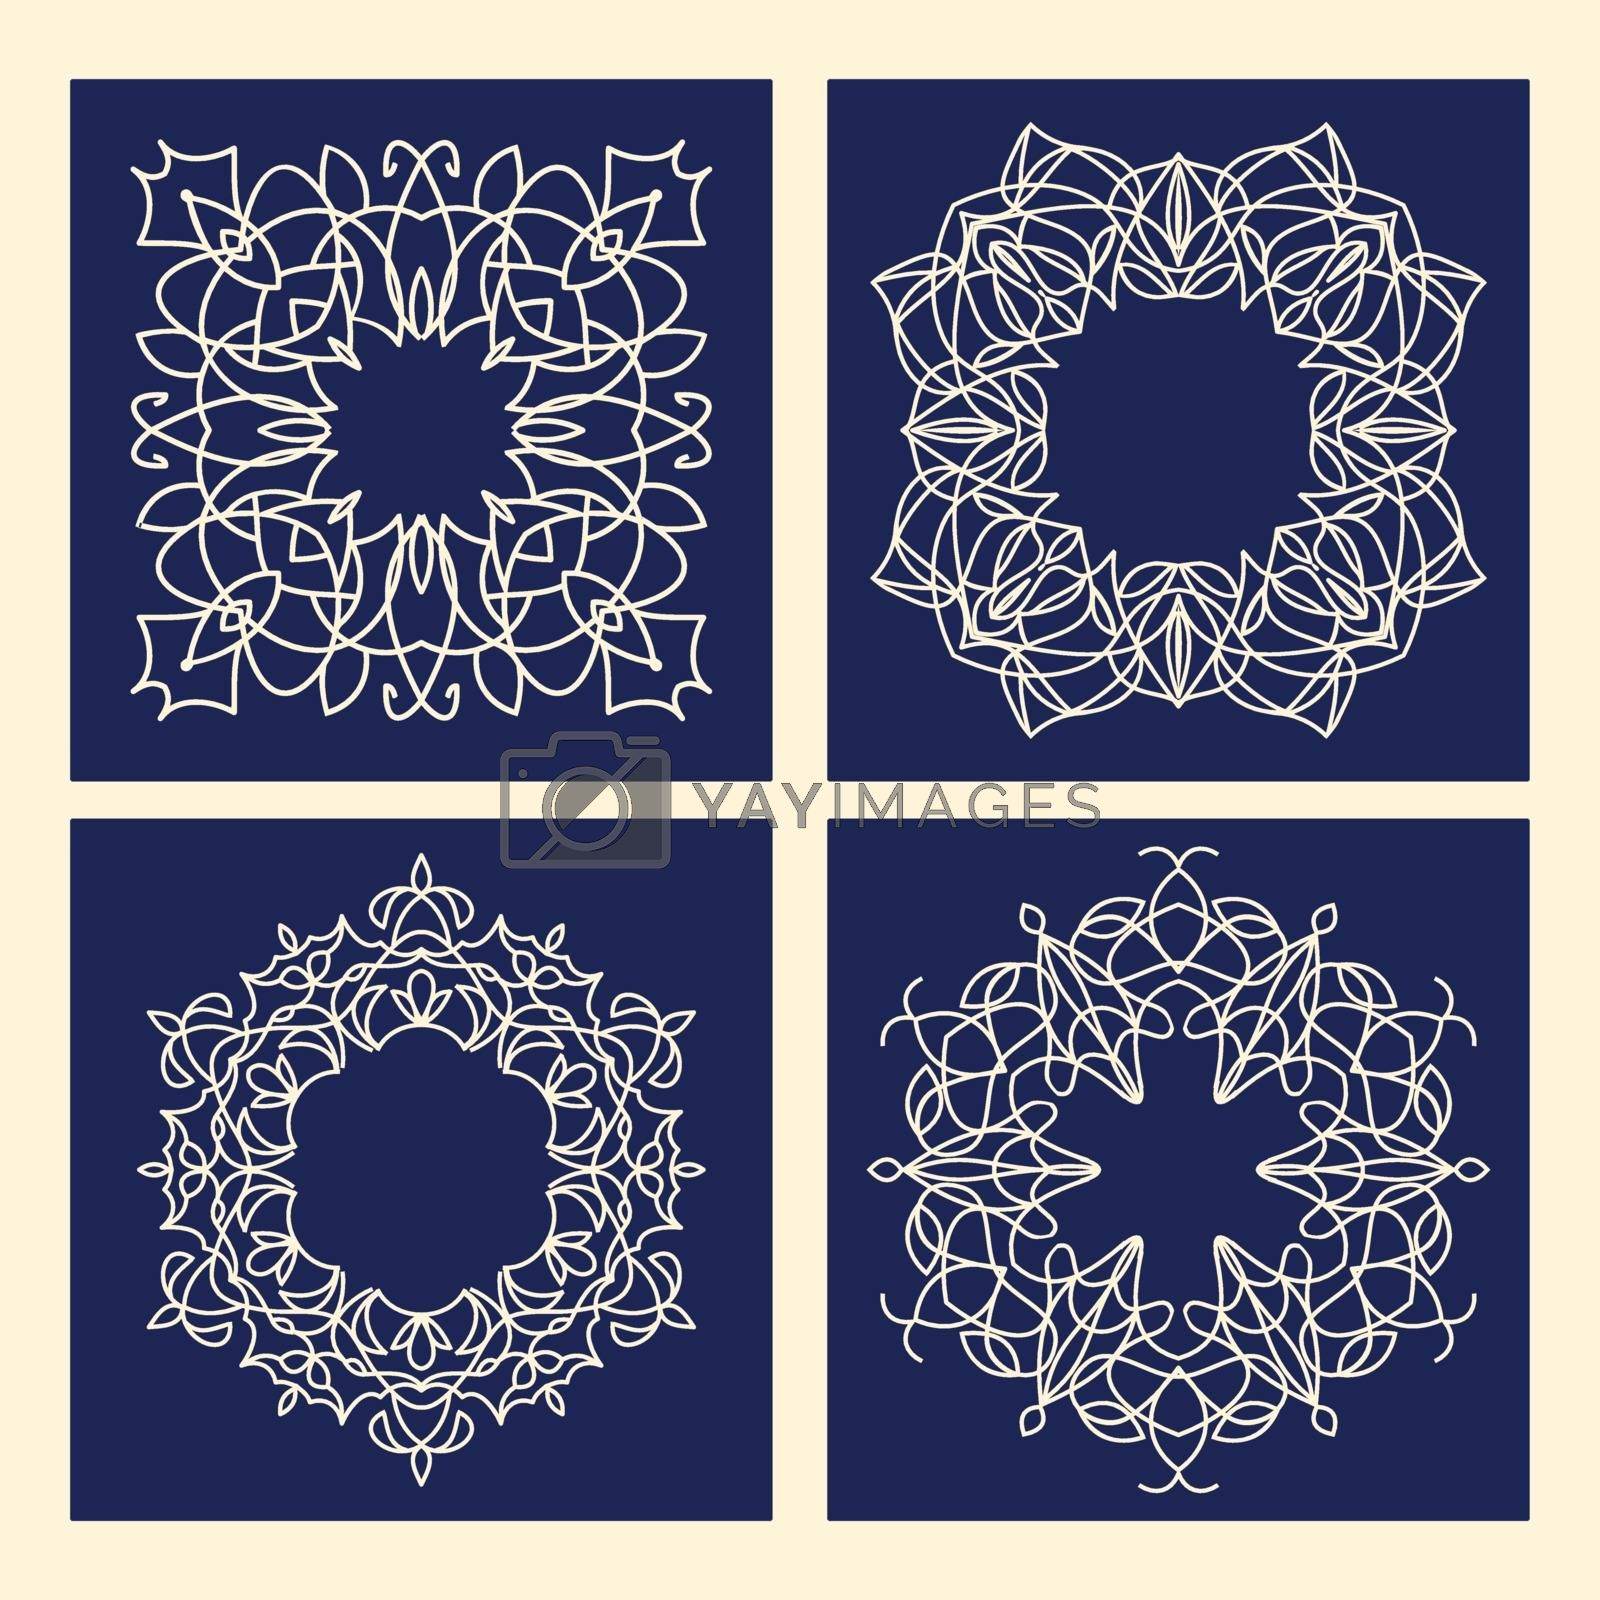 Vector set of abstract frames in line style - graphic design elements .Vector floral vintage frame with copy space for text